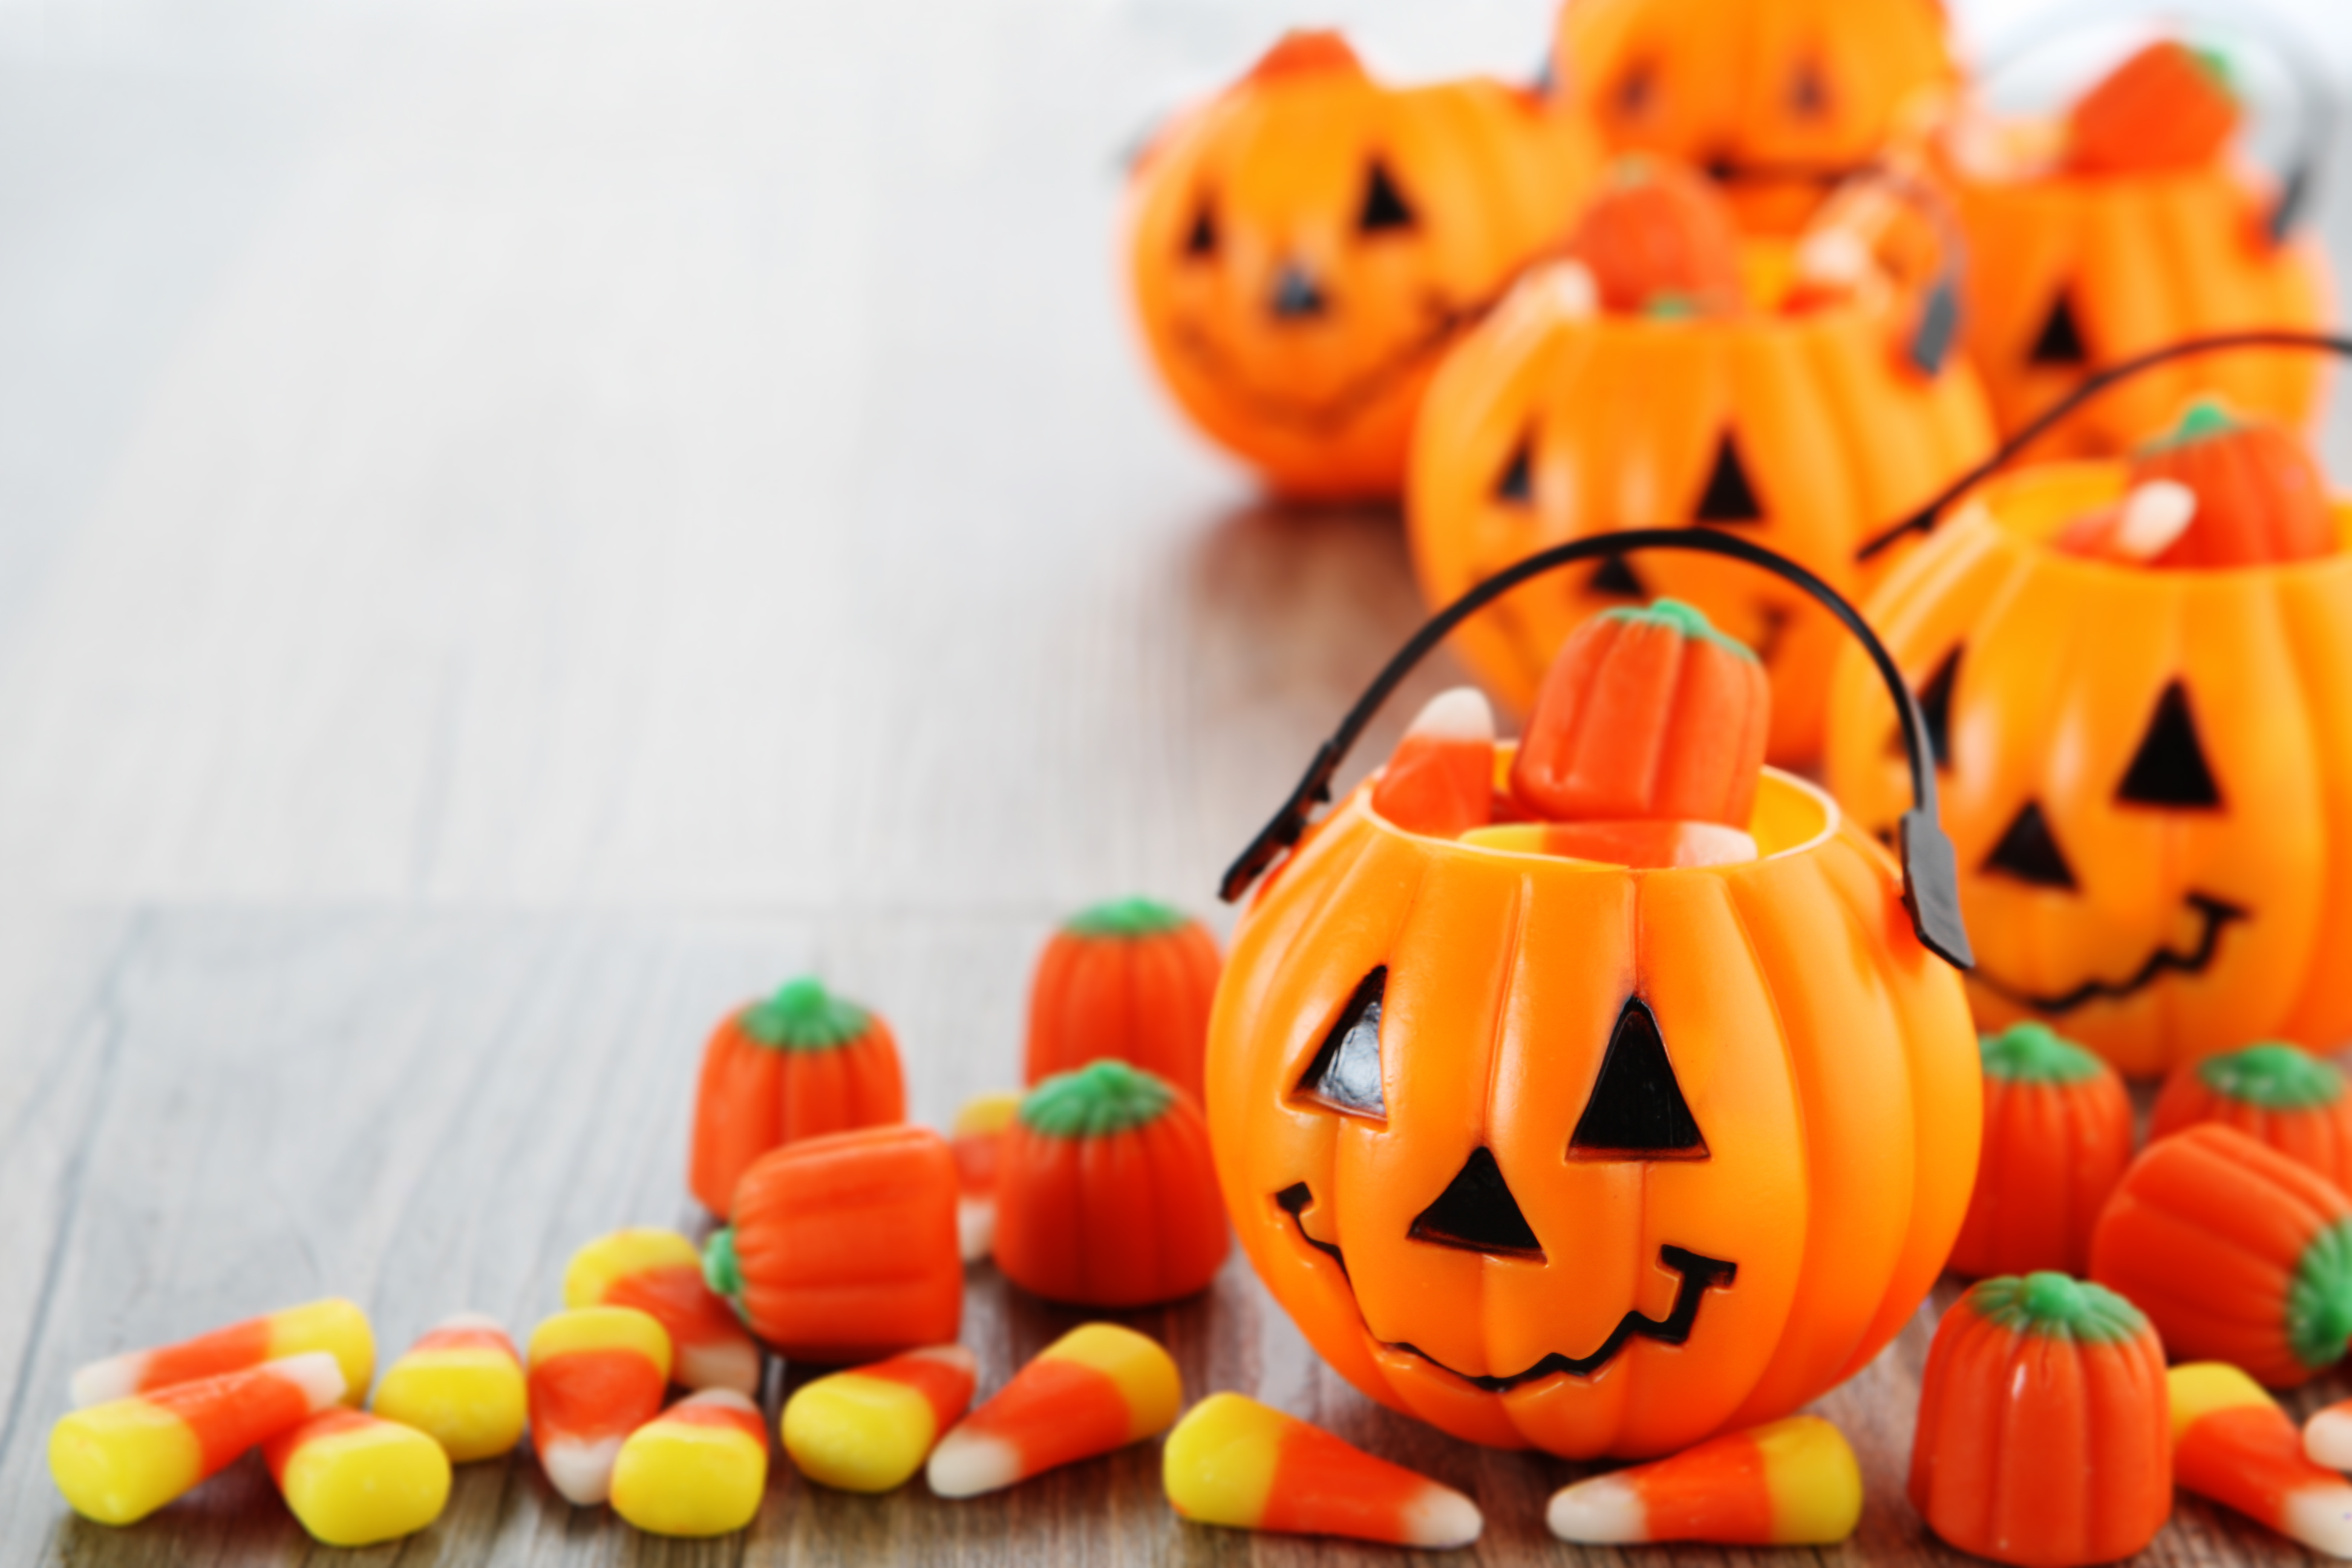 7 Healthy Halloween Snacks for the Classroom